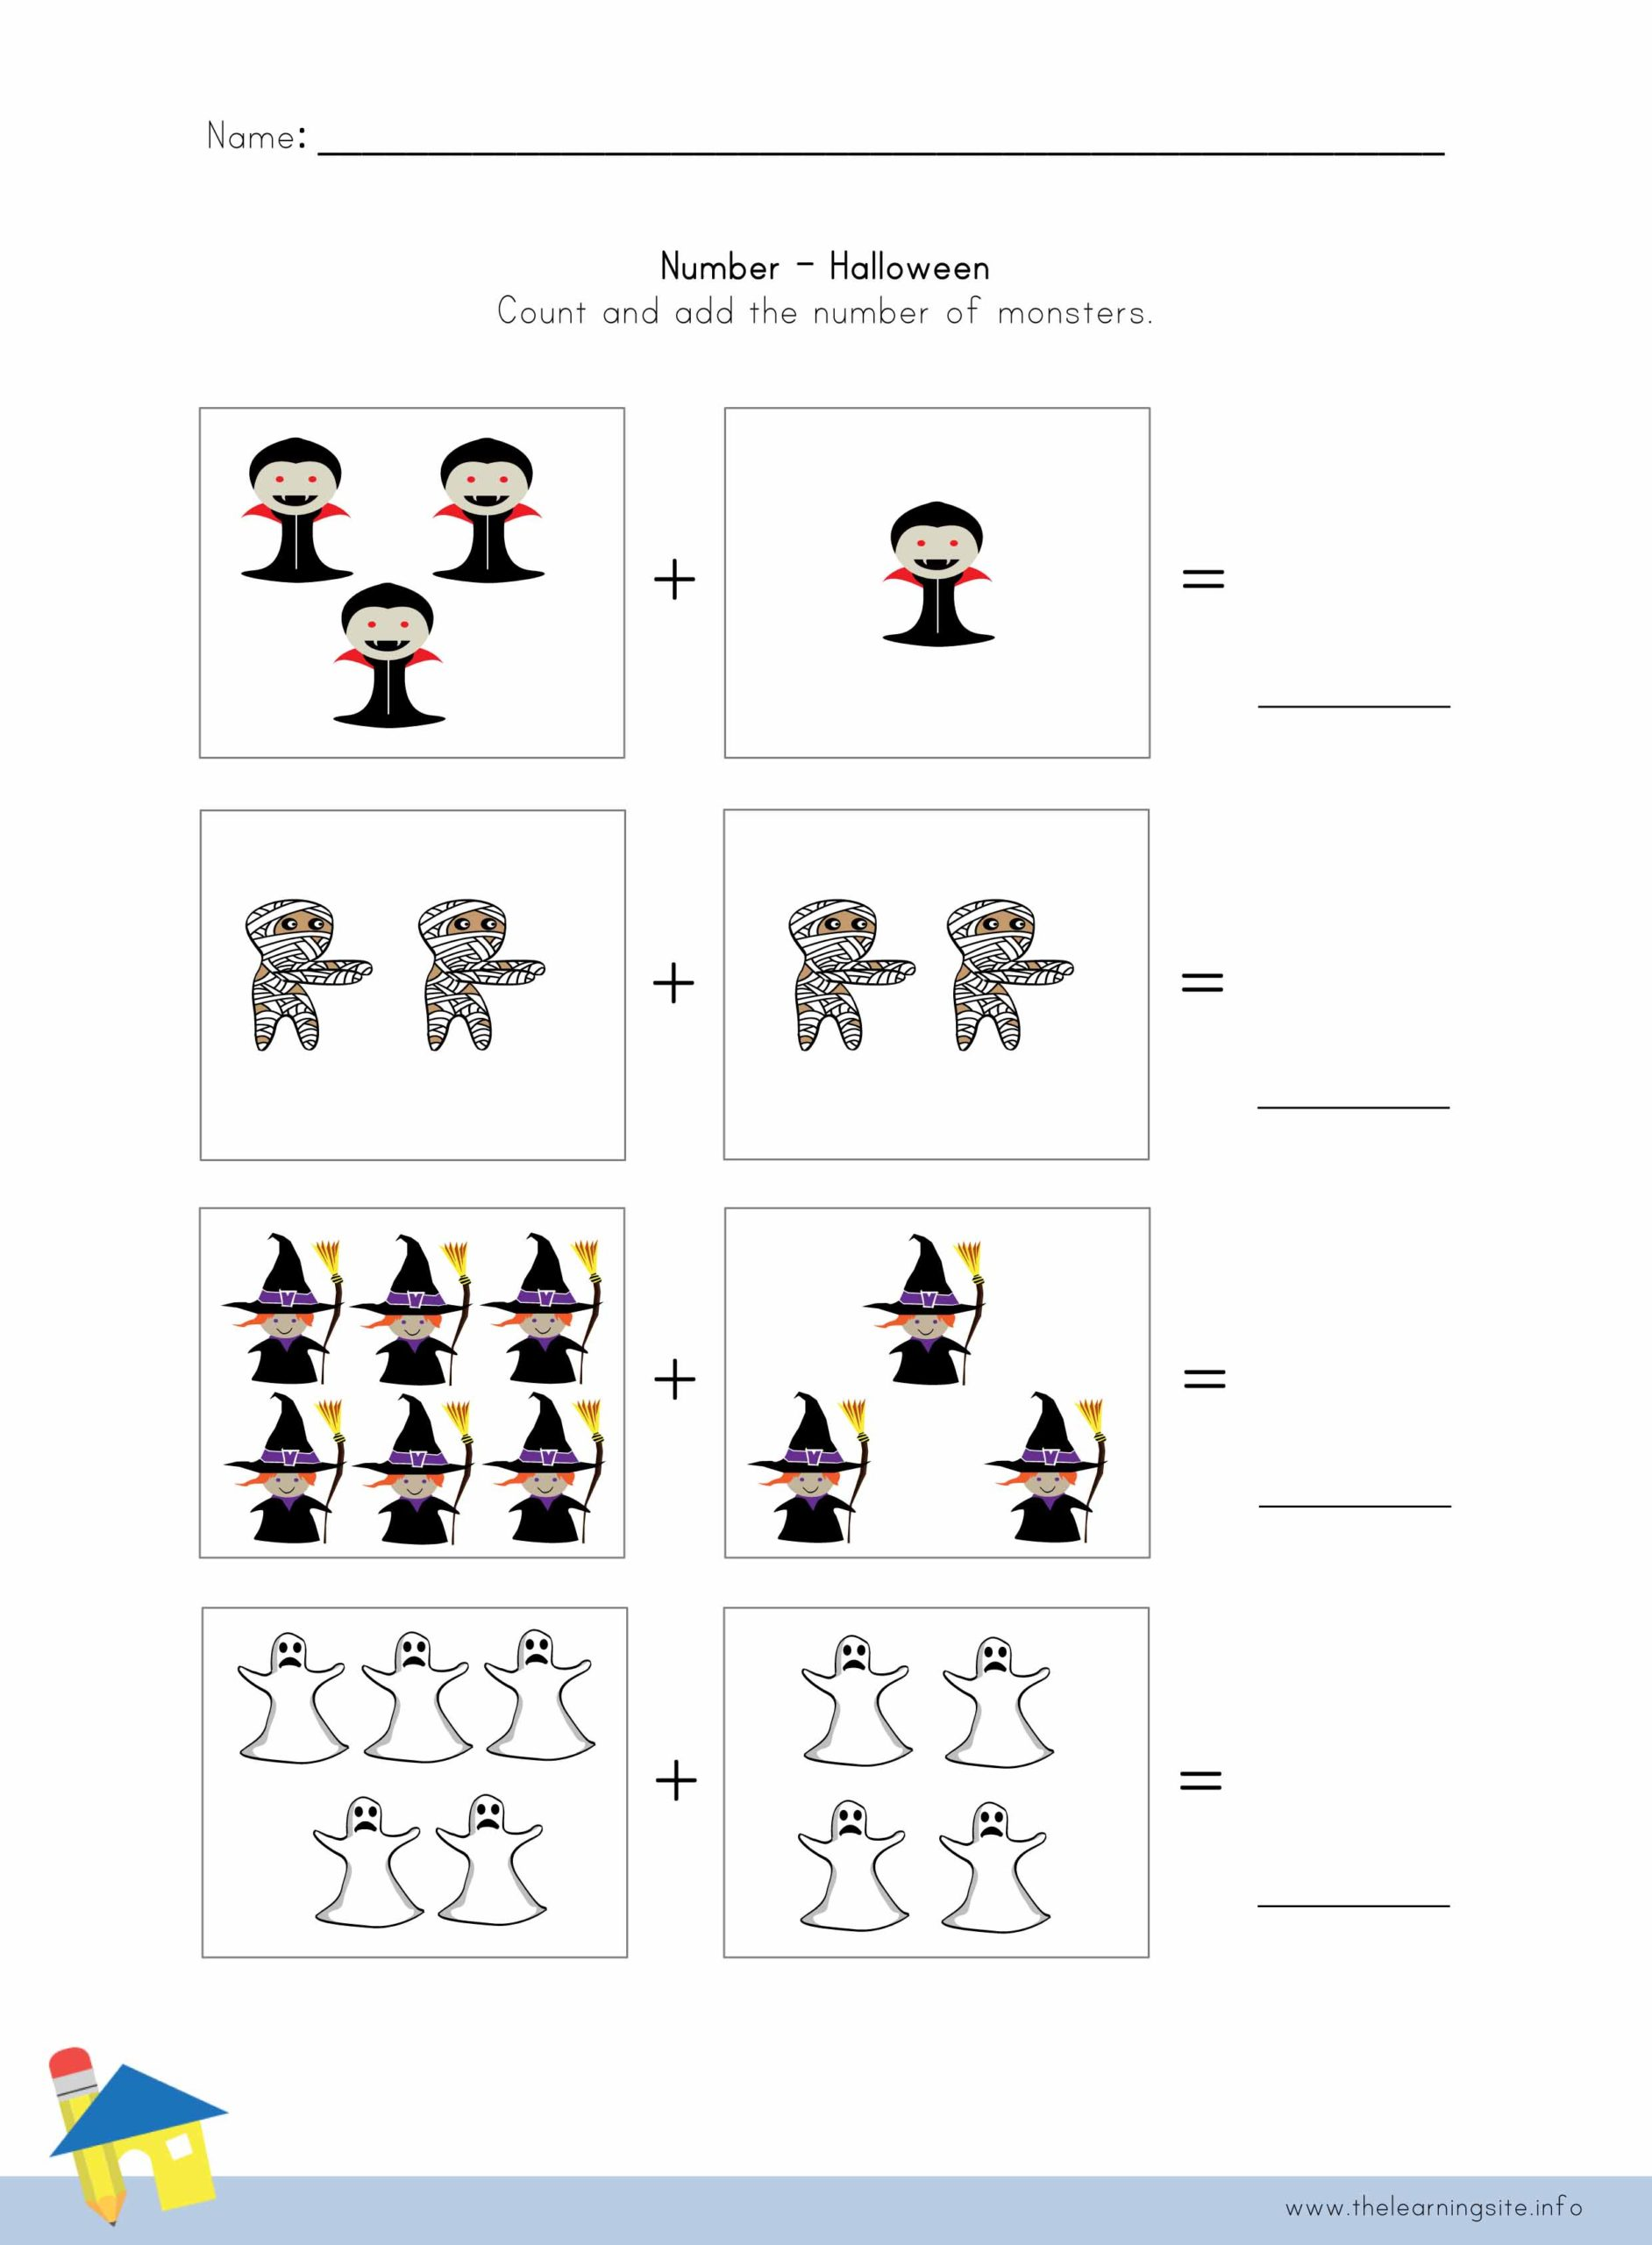 Halloween Number Worksheet 2 The Learning Site